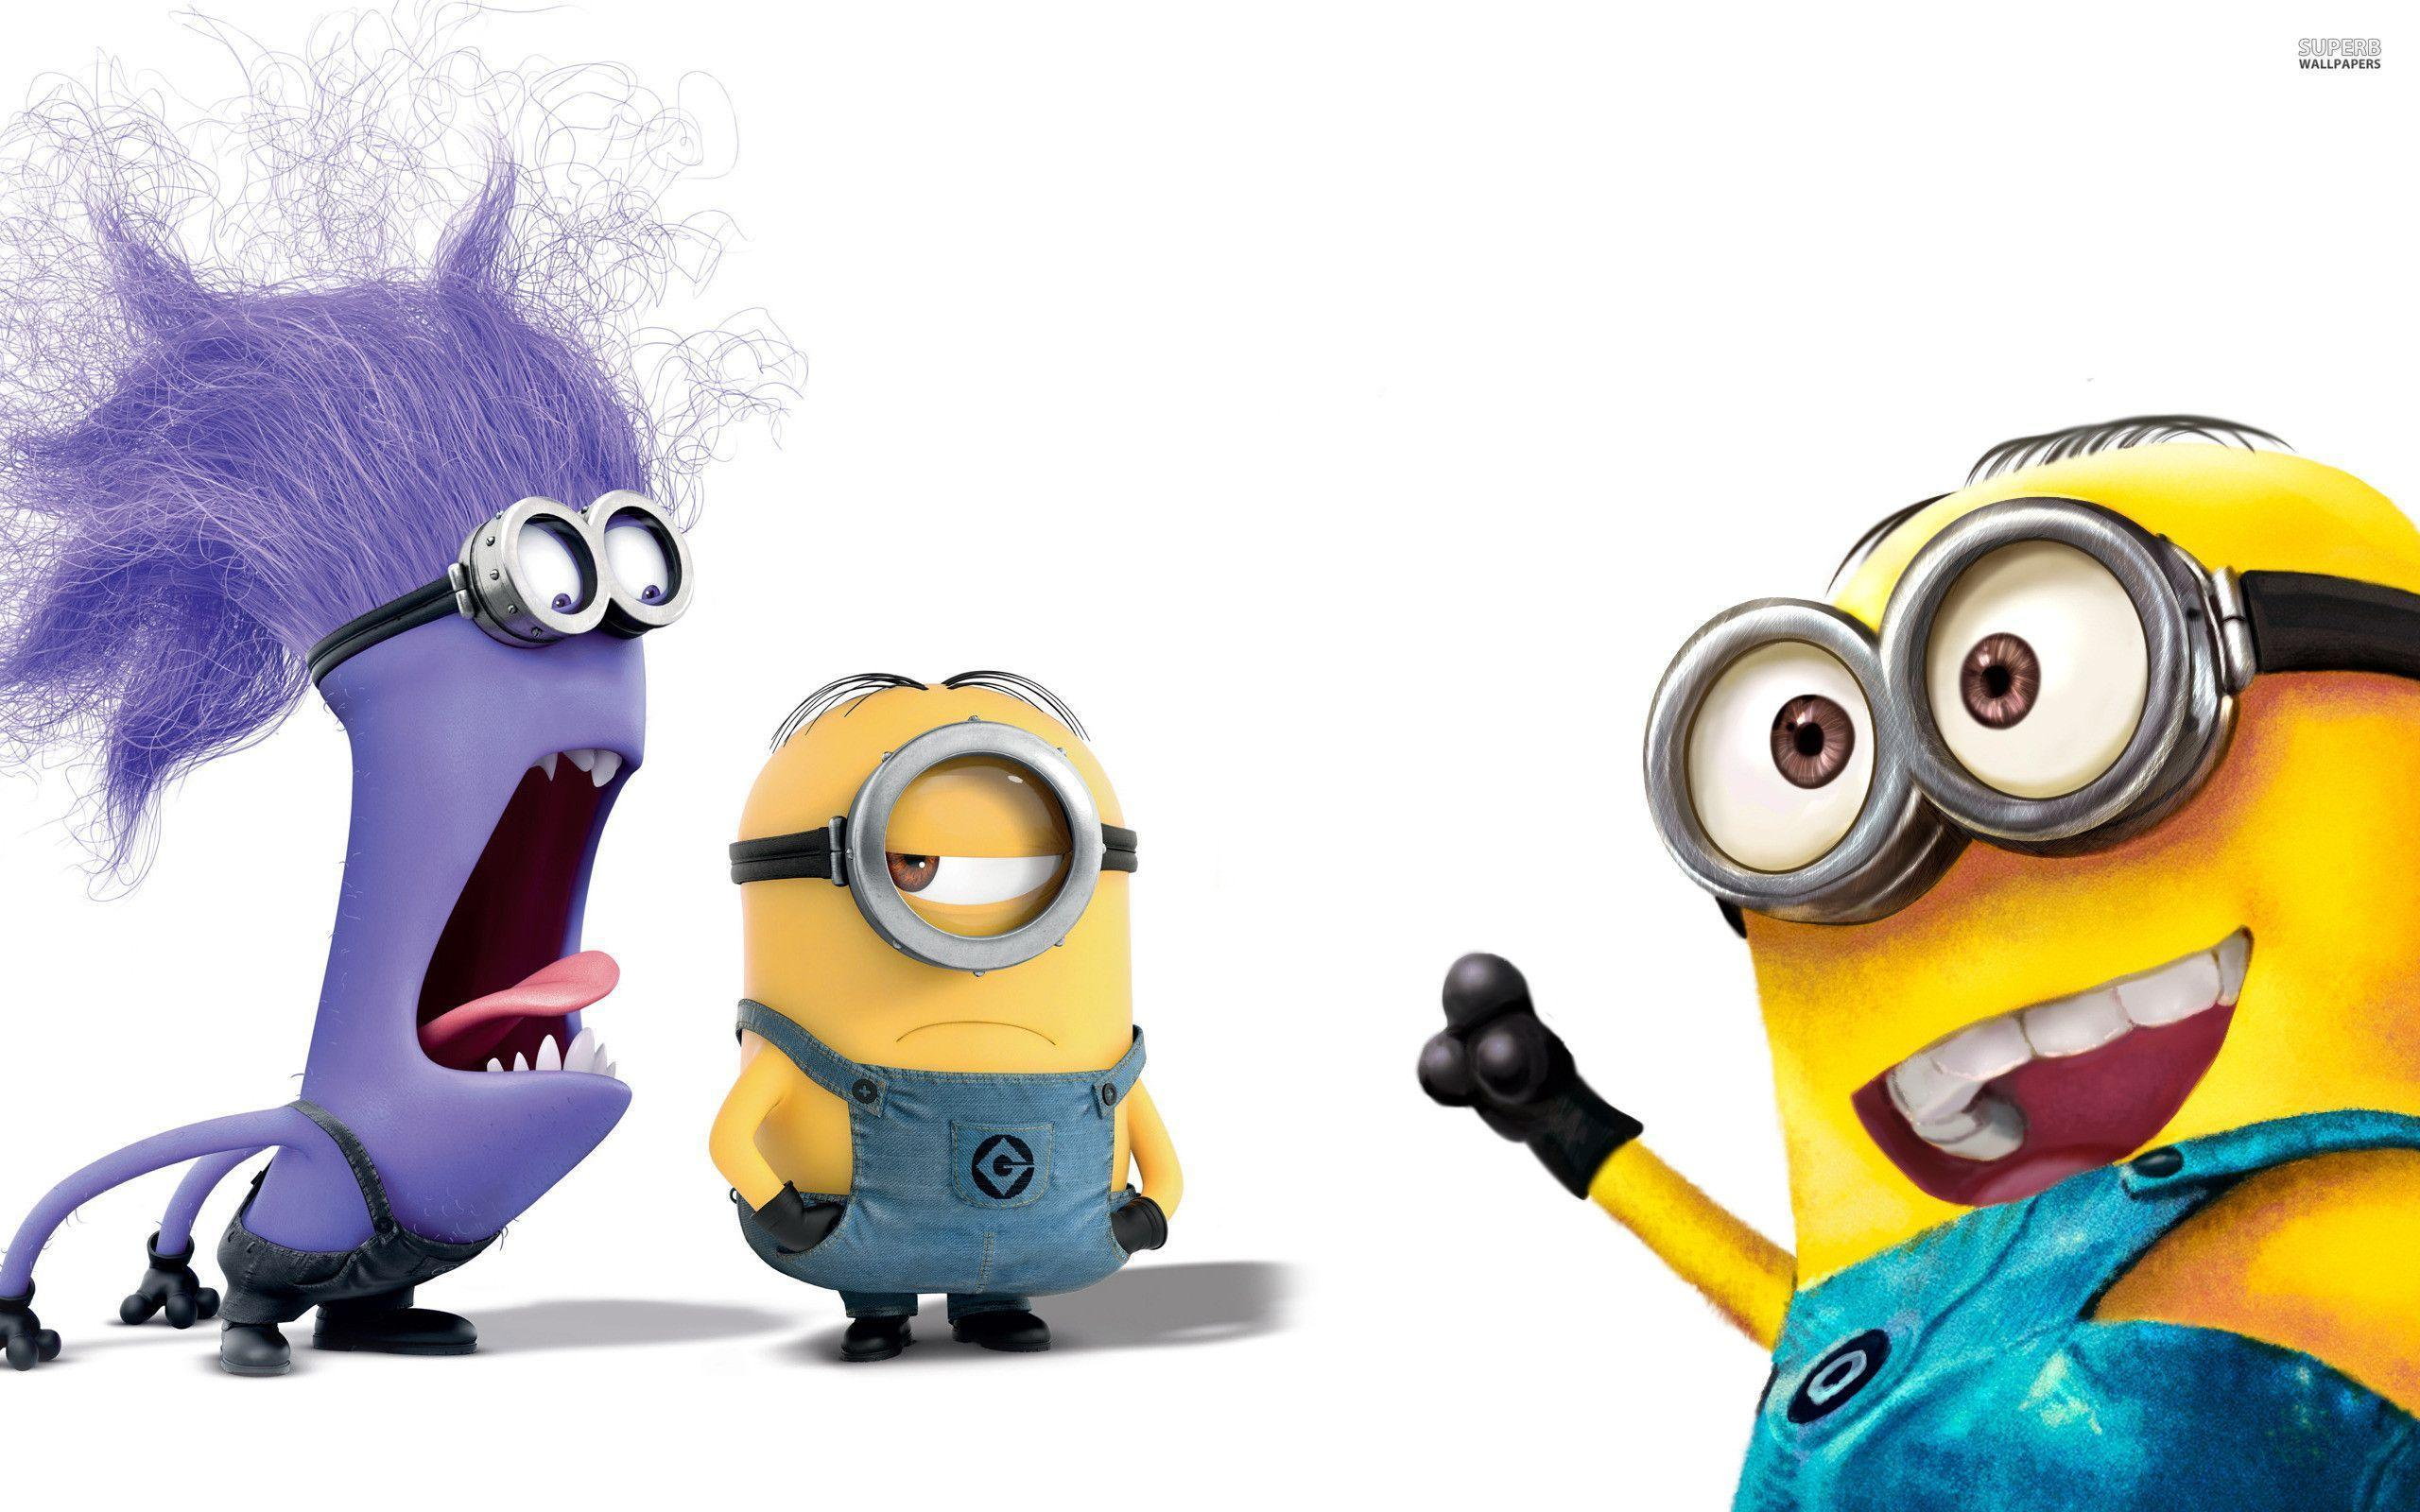 Despicable Me Minion Wallpapers - Wallpaper Cave